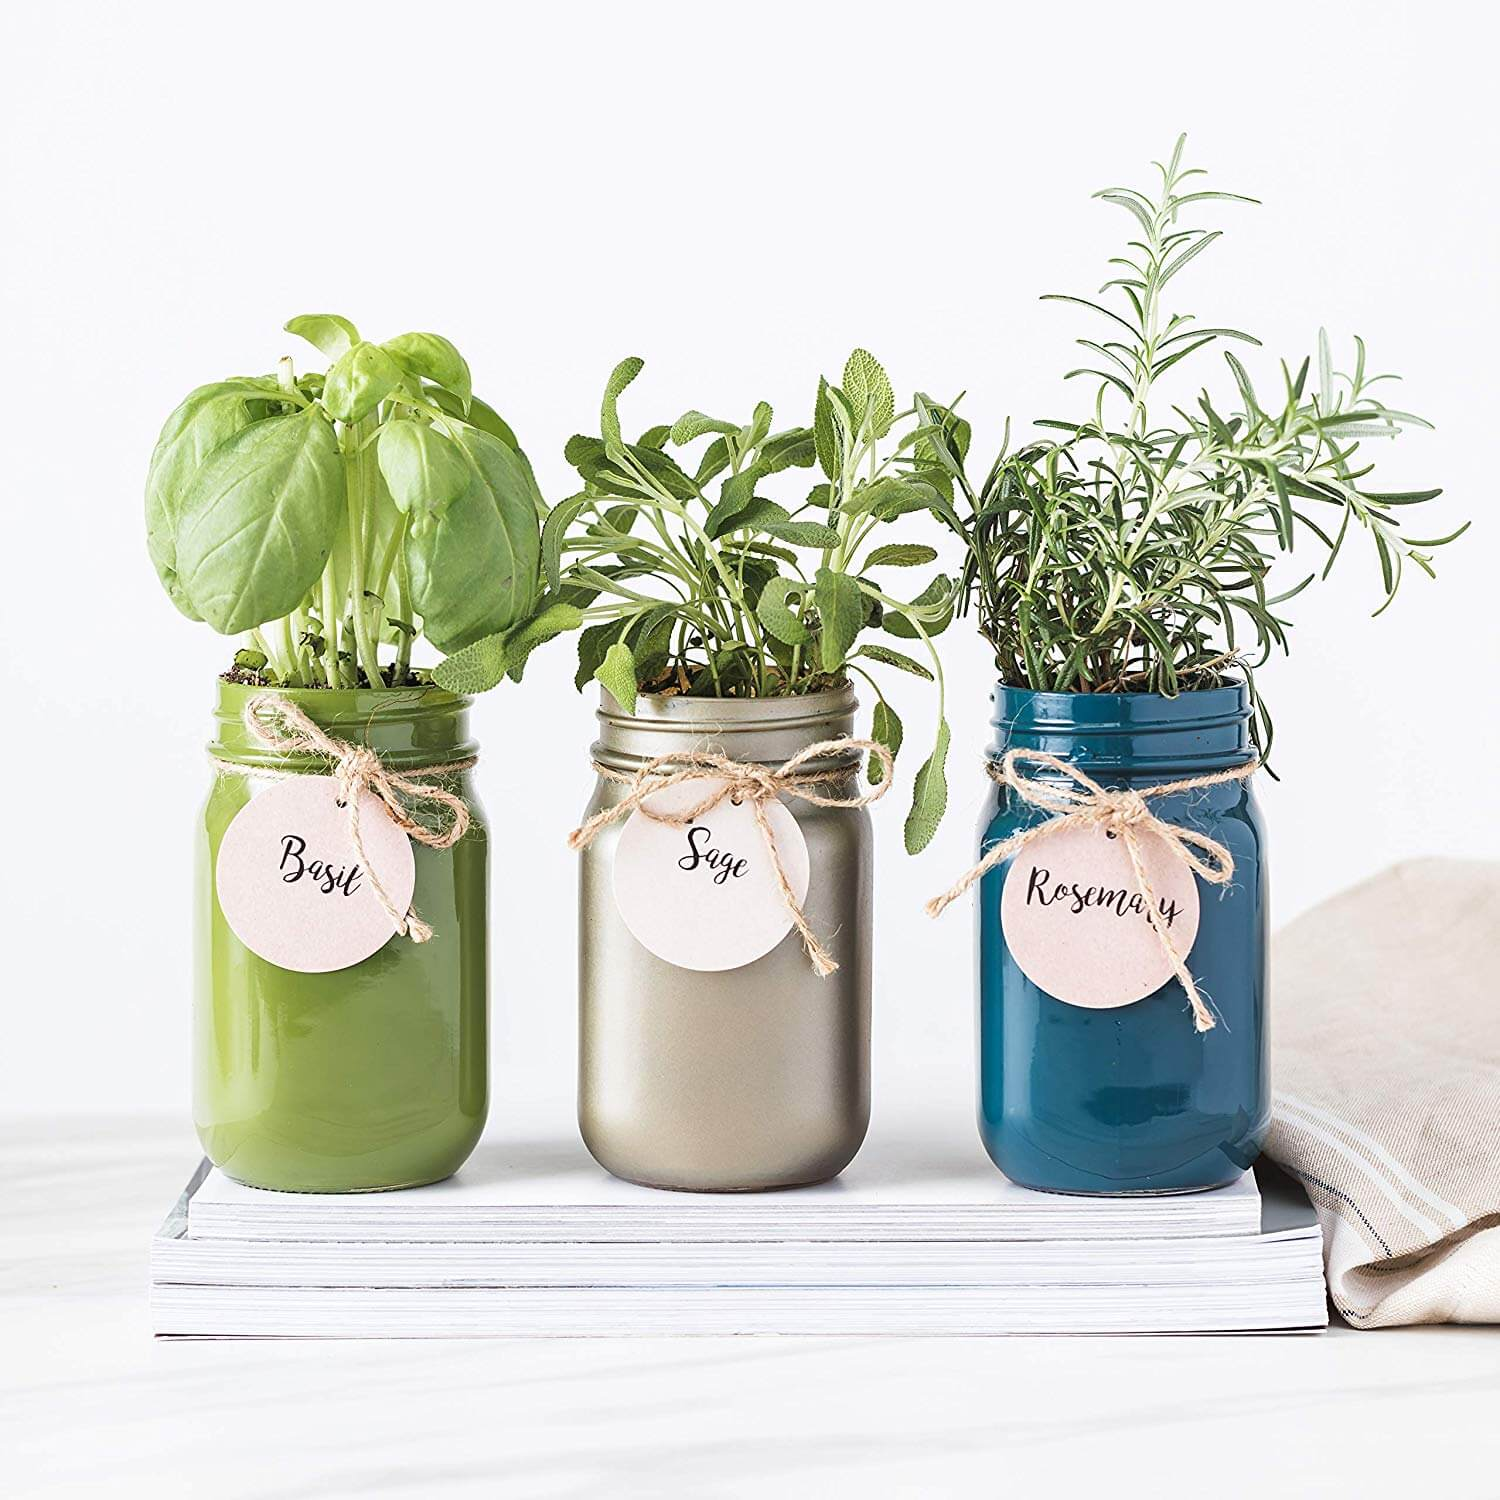 Home garden in jars as one of productive things to do when bored